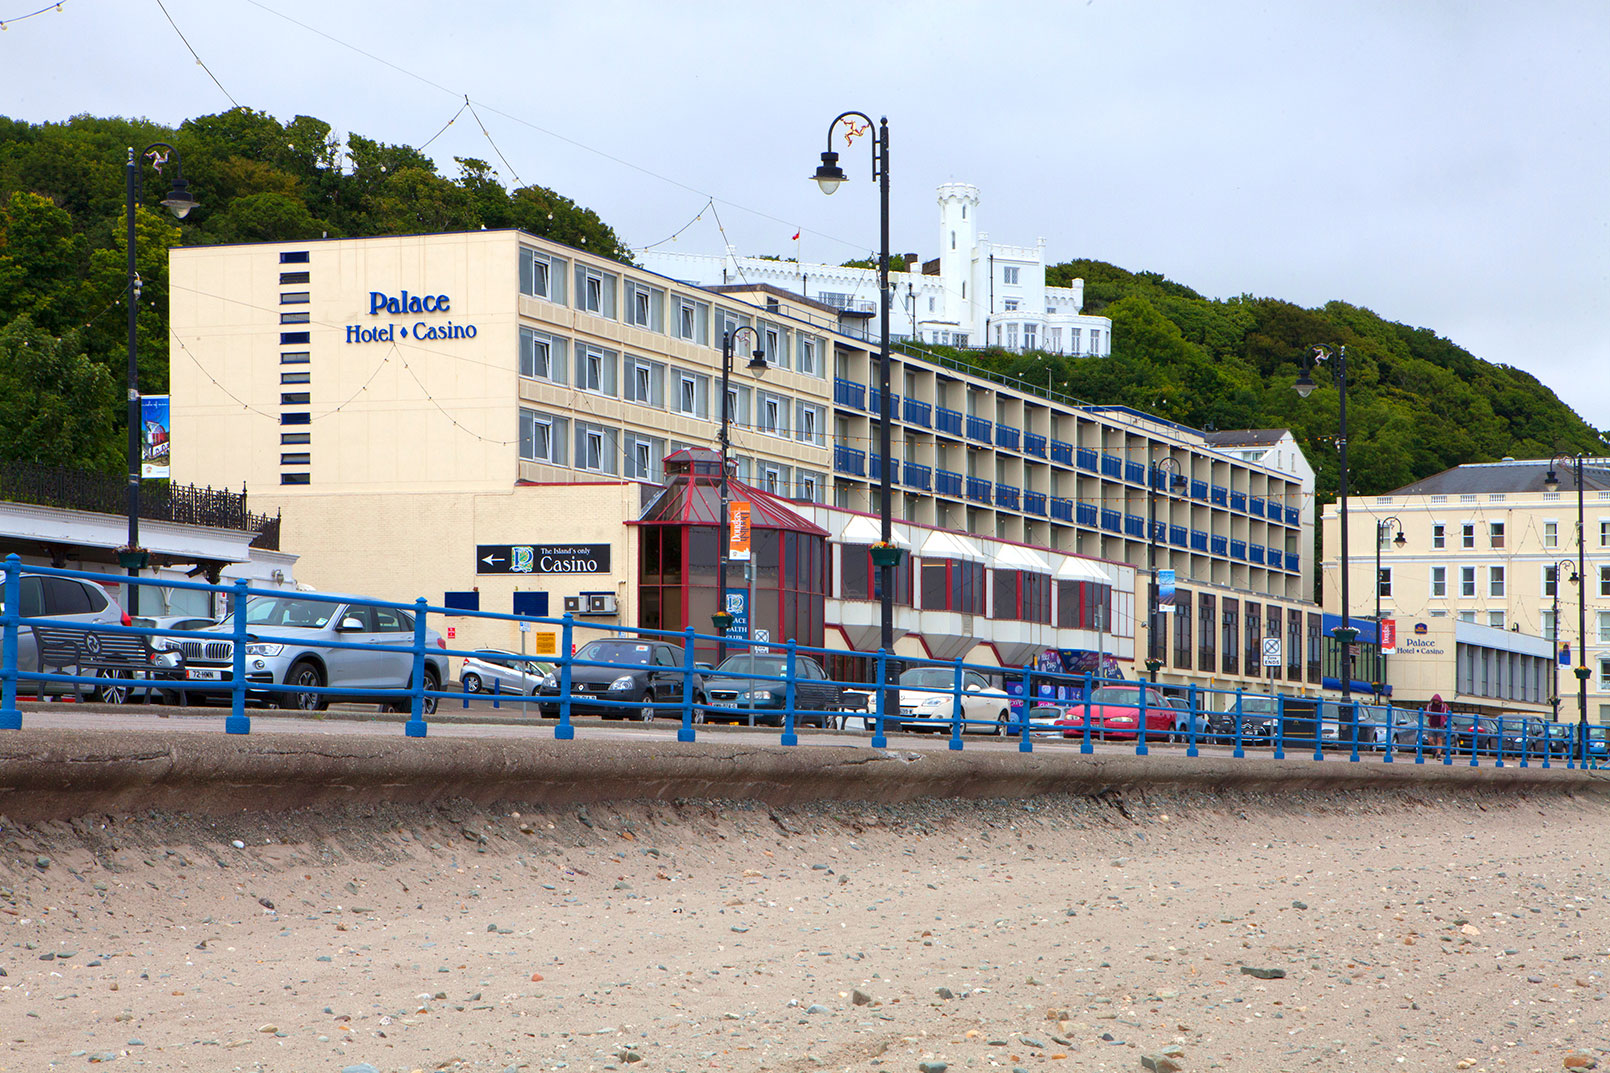 Palace hotel casino douglas isle of man